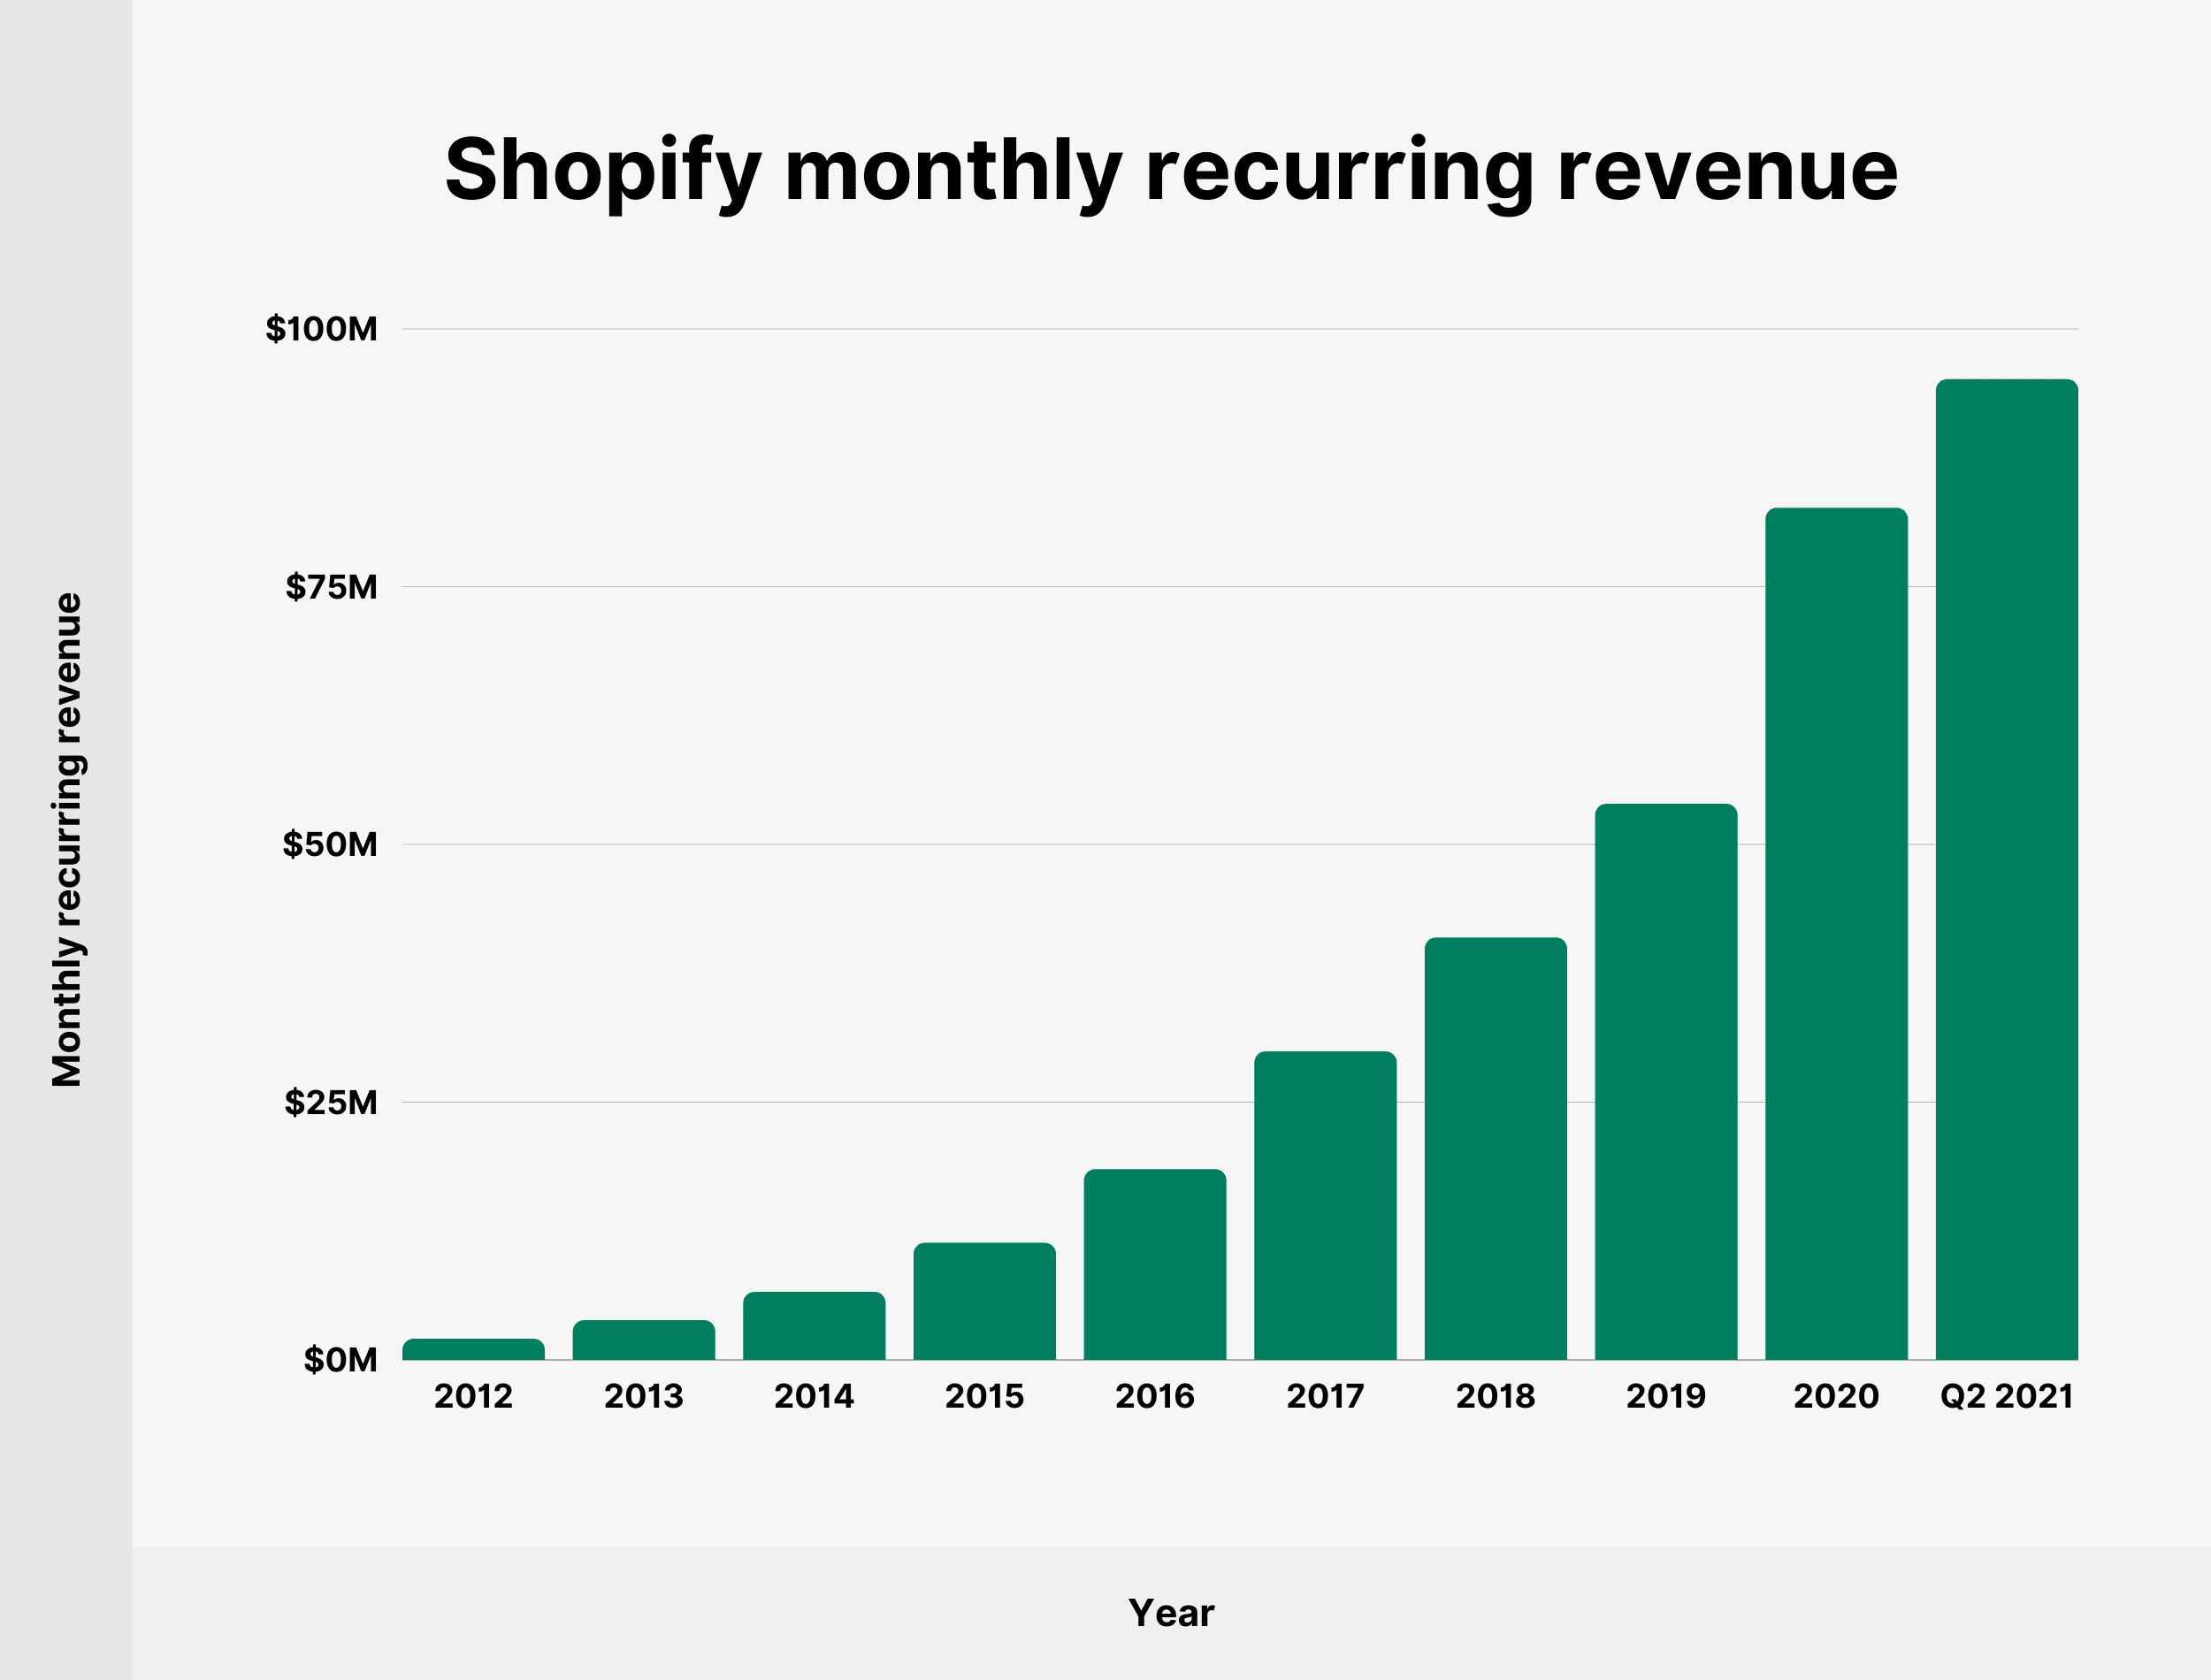 Shopify monthly recurring revenue